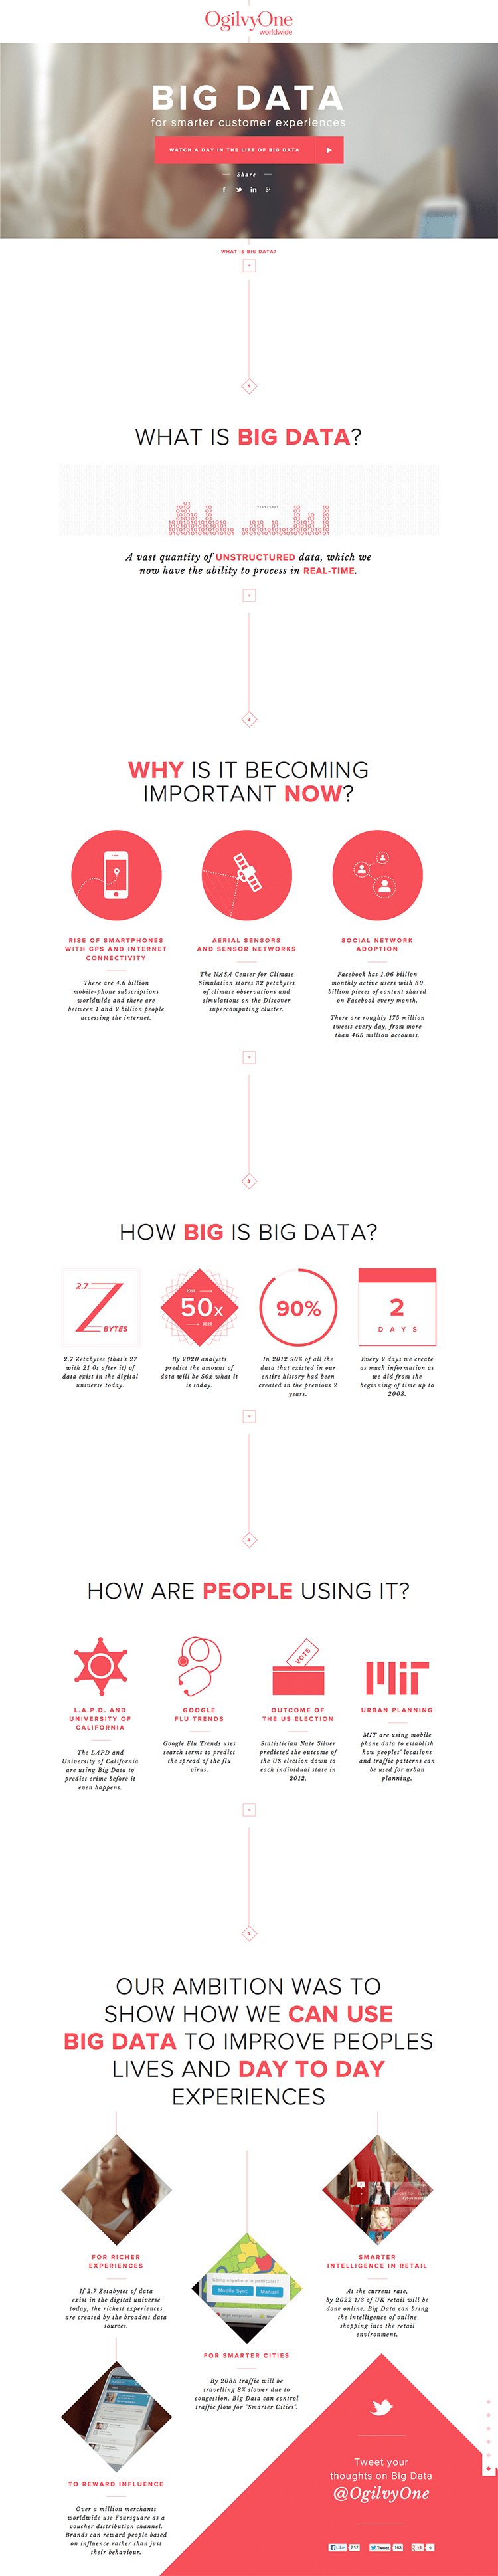 BIG DATA For Smarter Customer Experiences